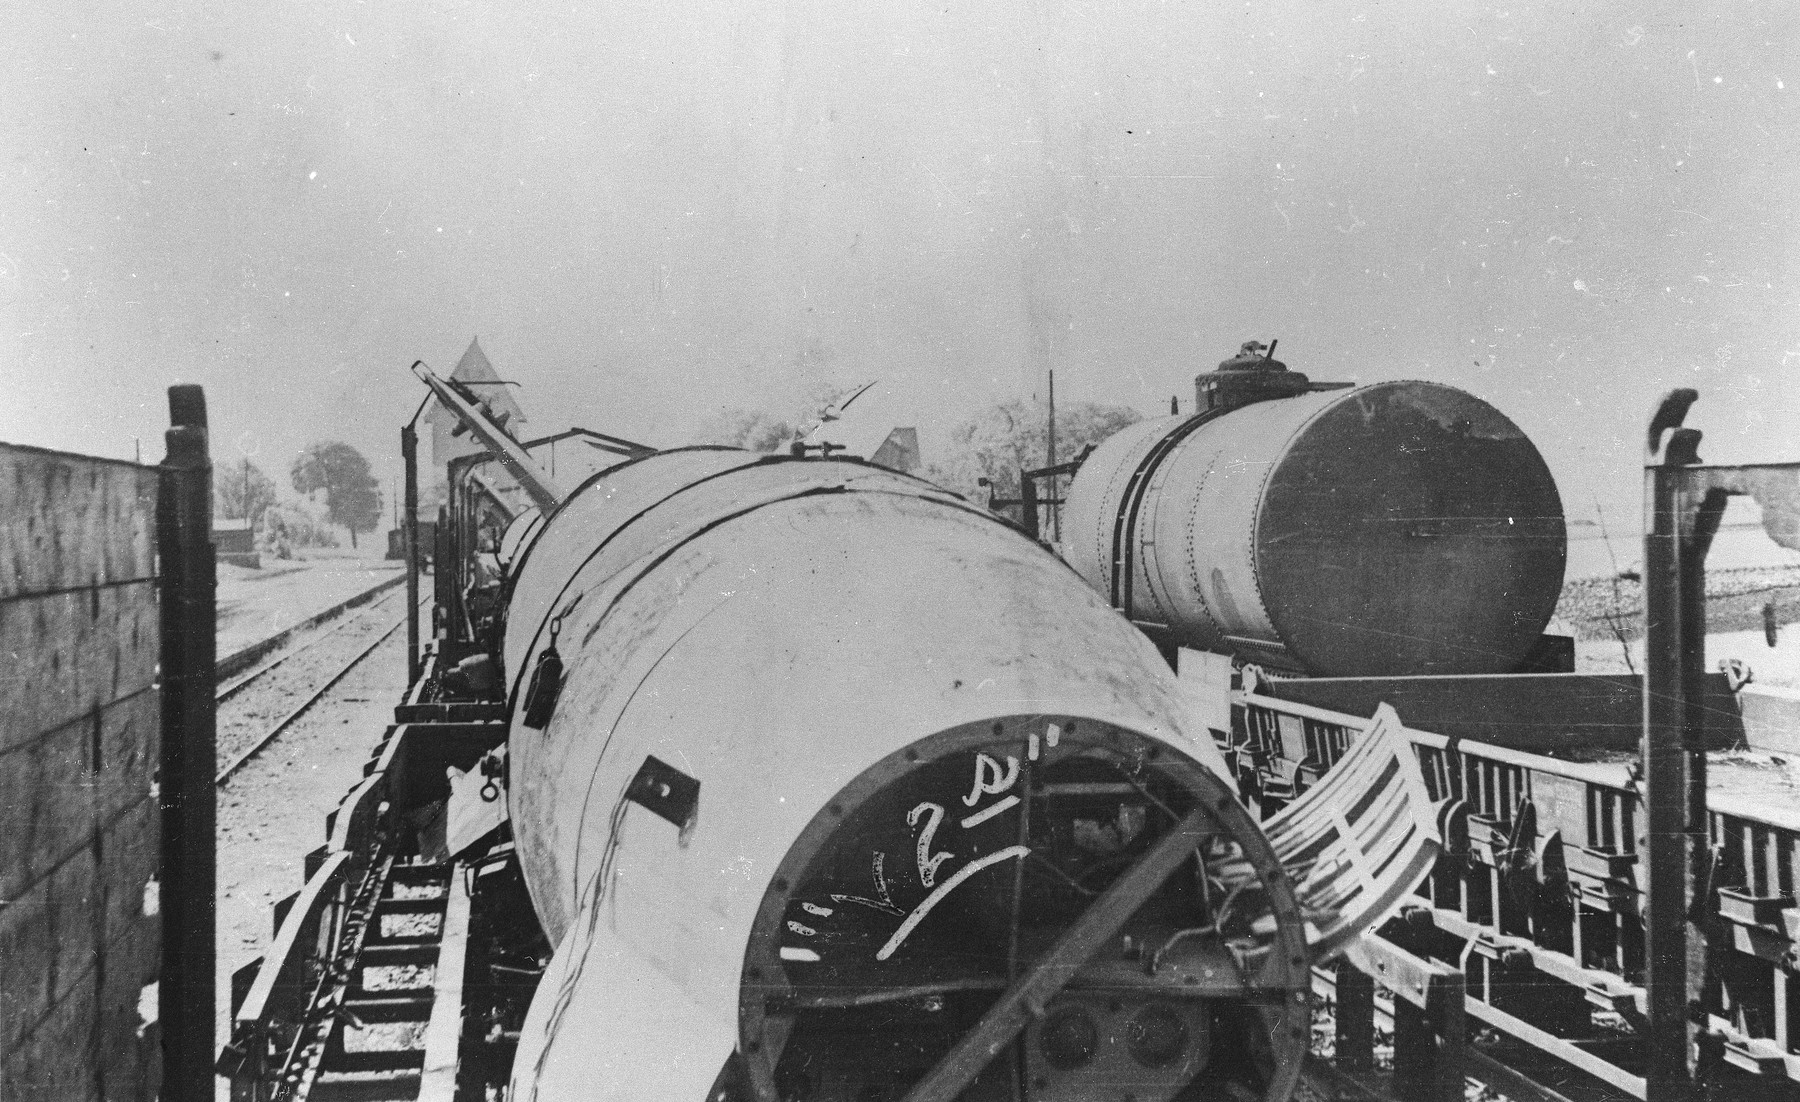 View of the V-2 missile manufactured with the use of slave labor at Dora-Mittelbau.